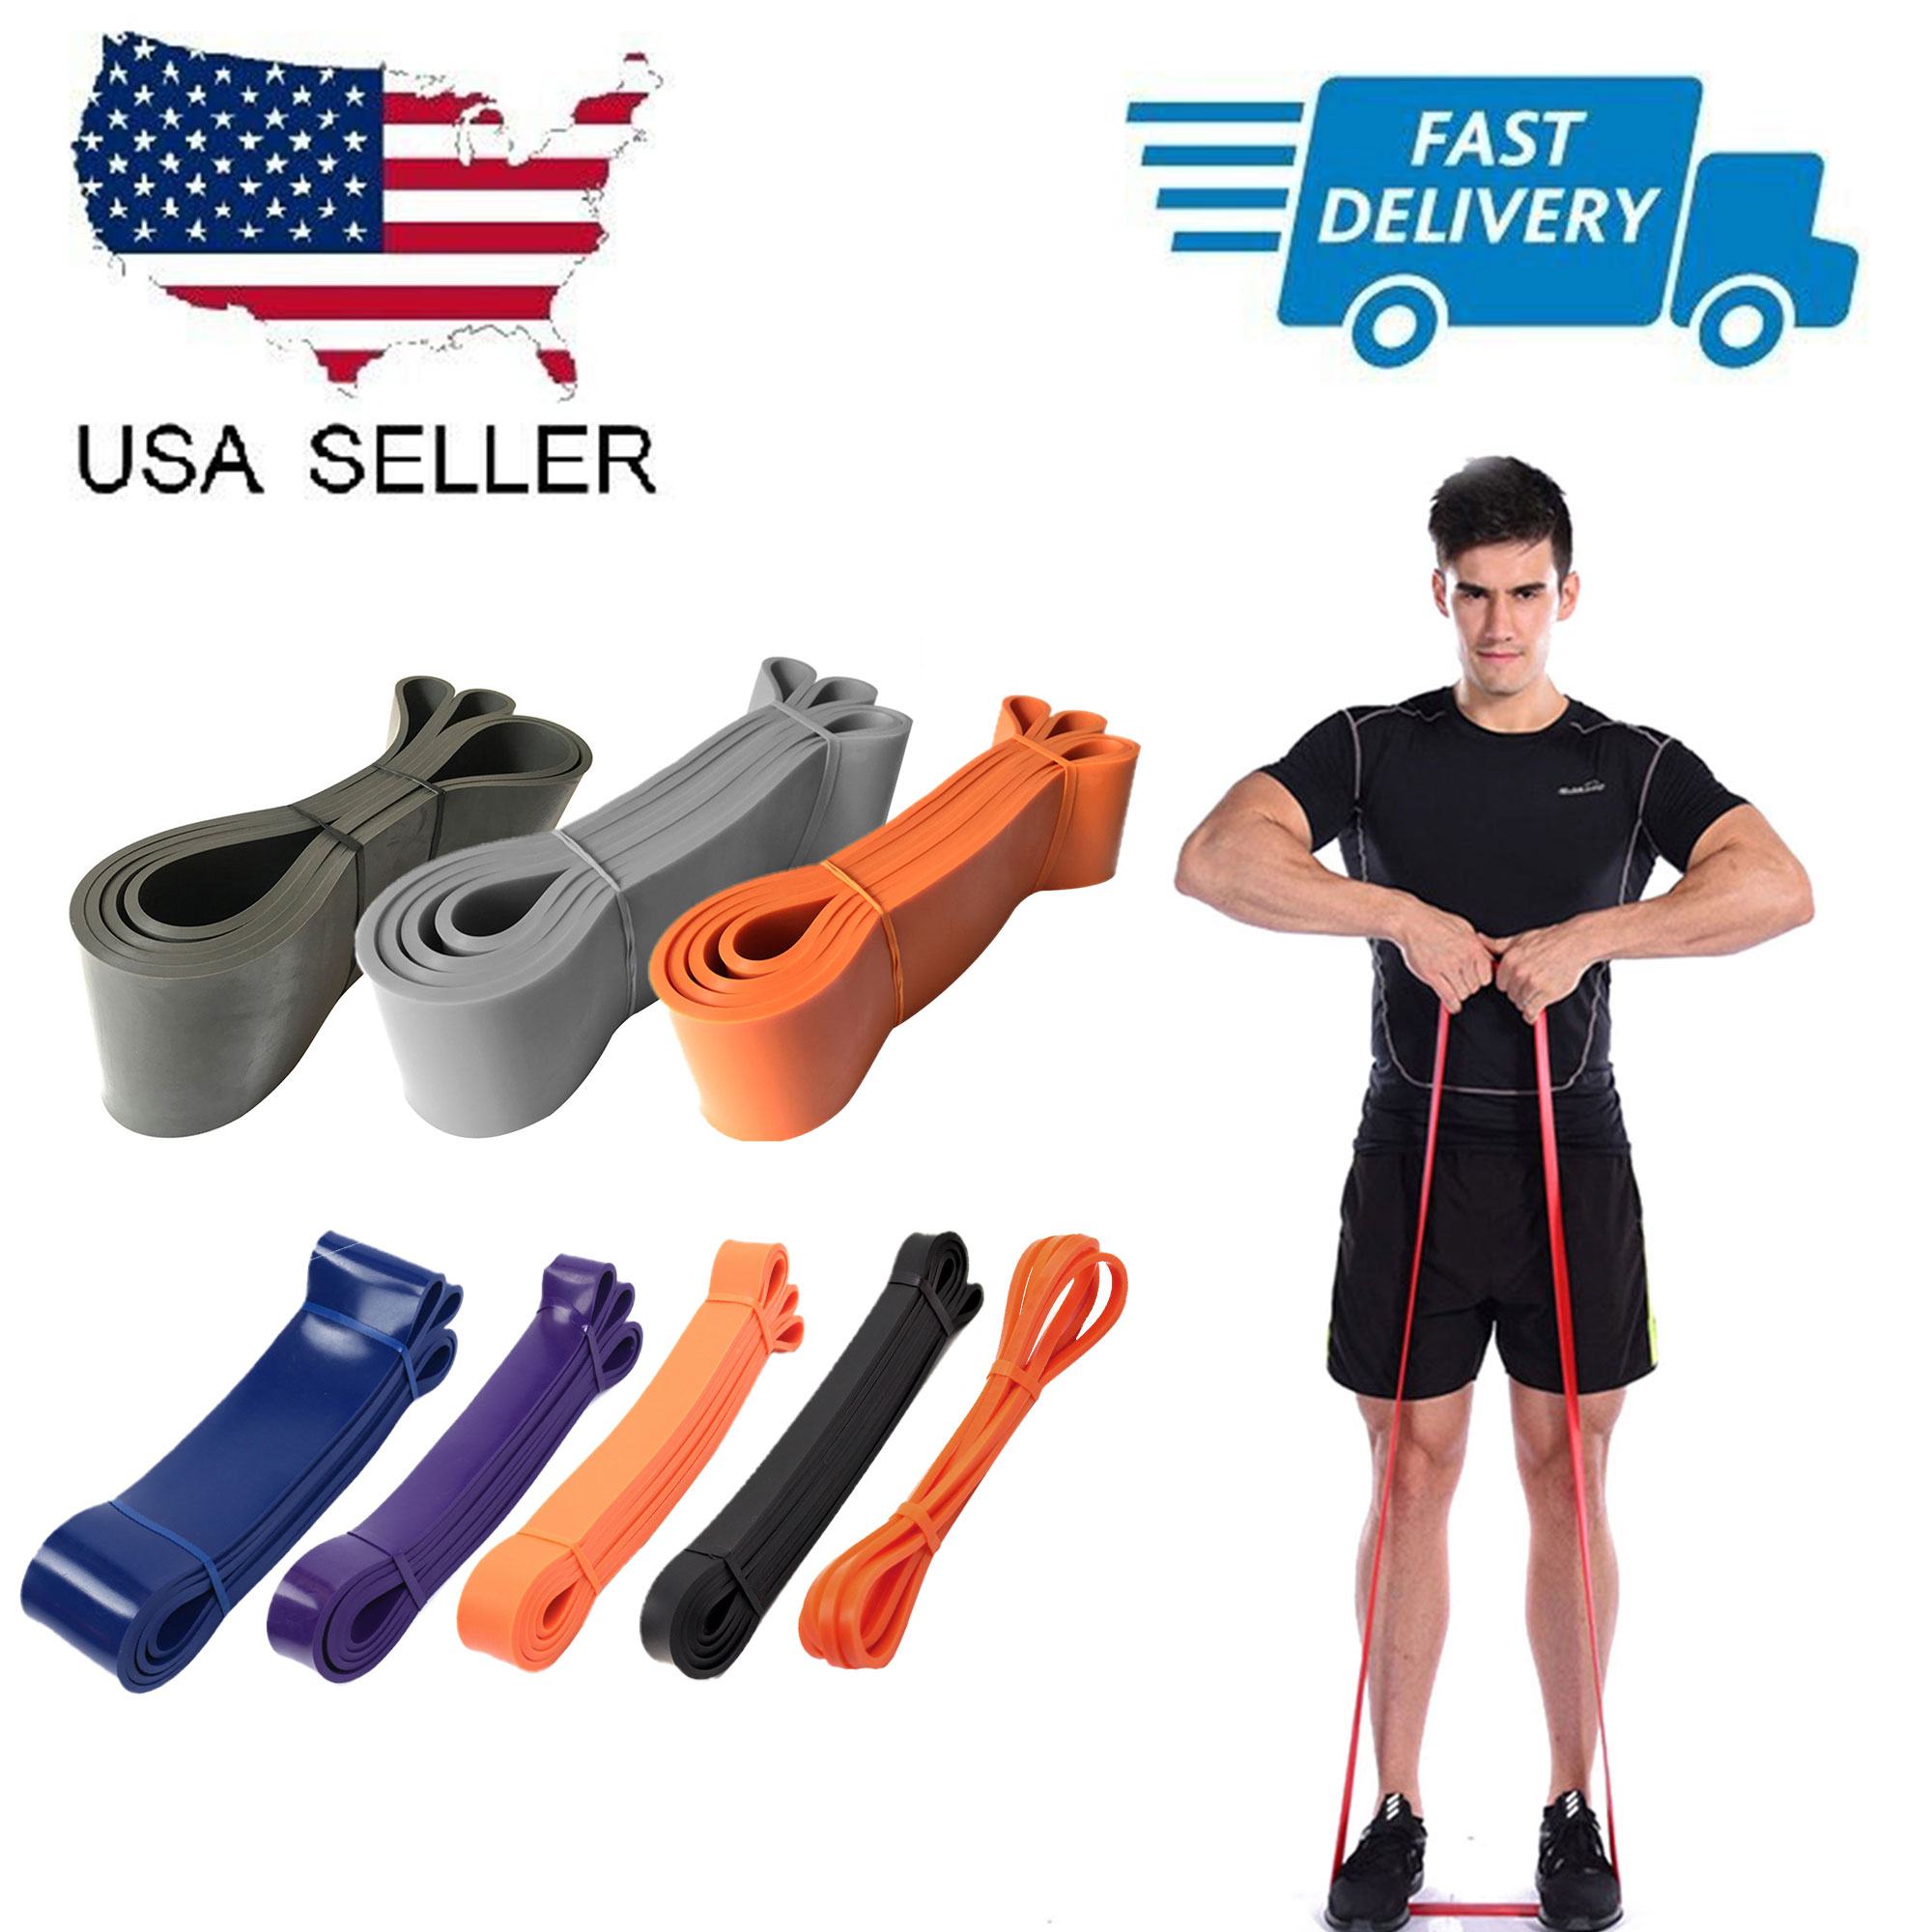 Details about  /Resistance Bands Rubber Set Home Workout Elastic Band Fitness Yoga Exercise Gym